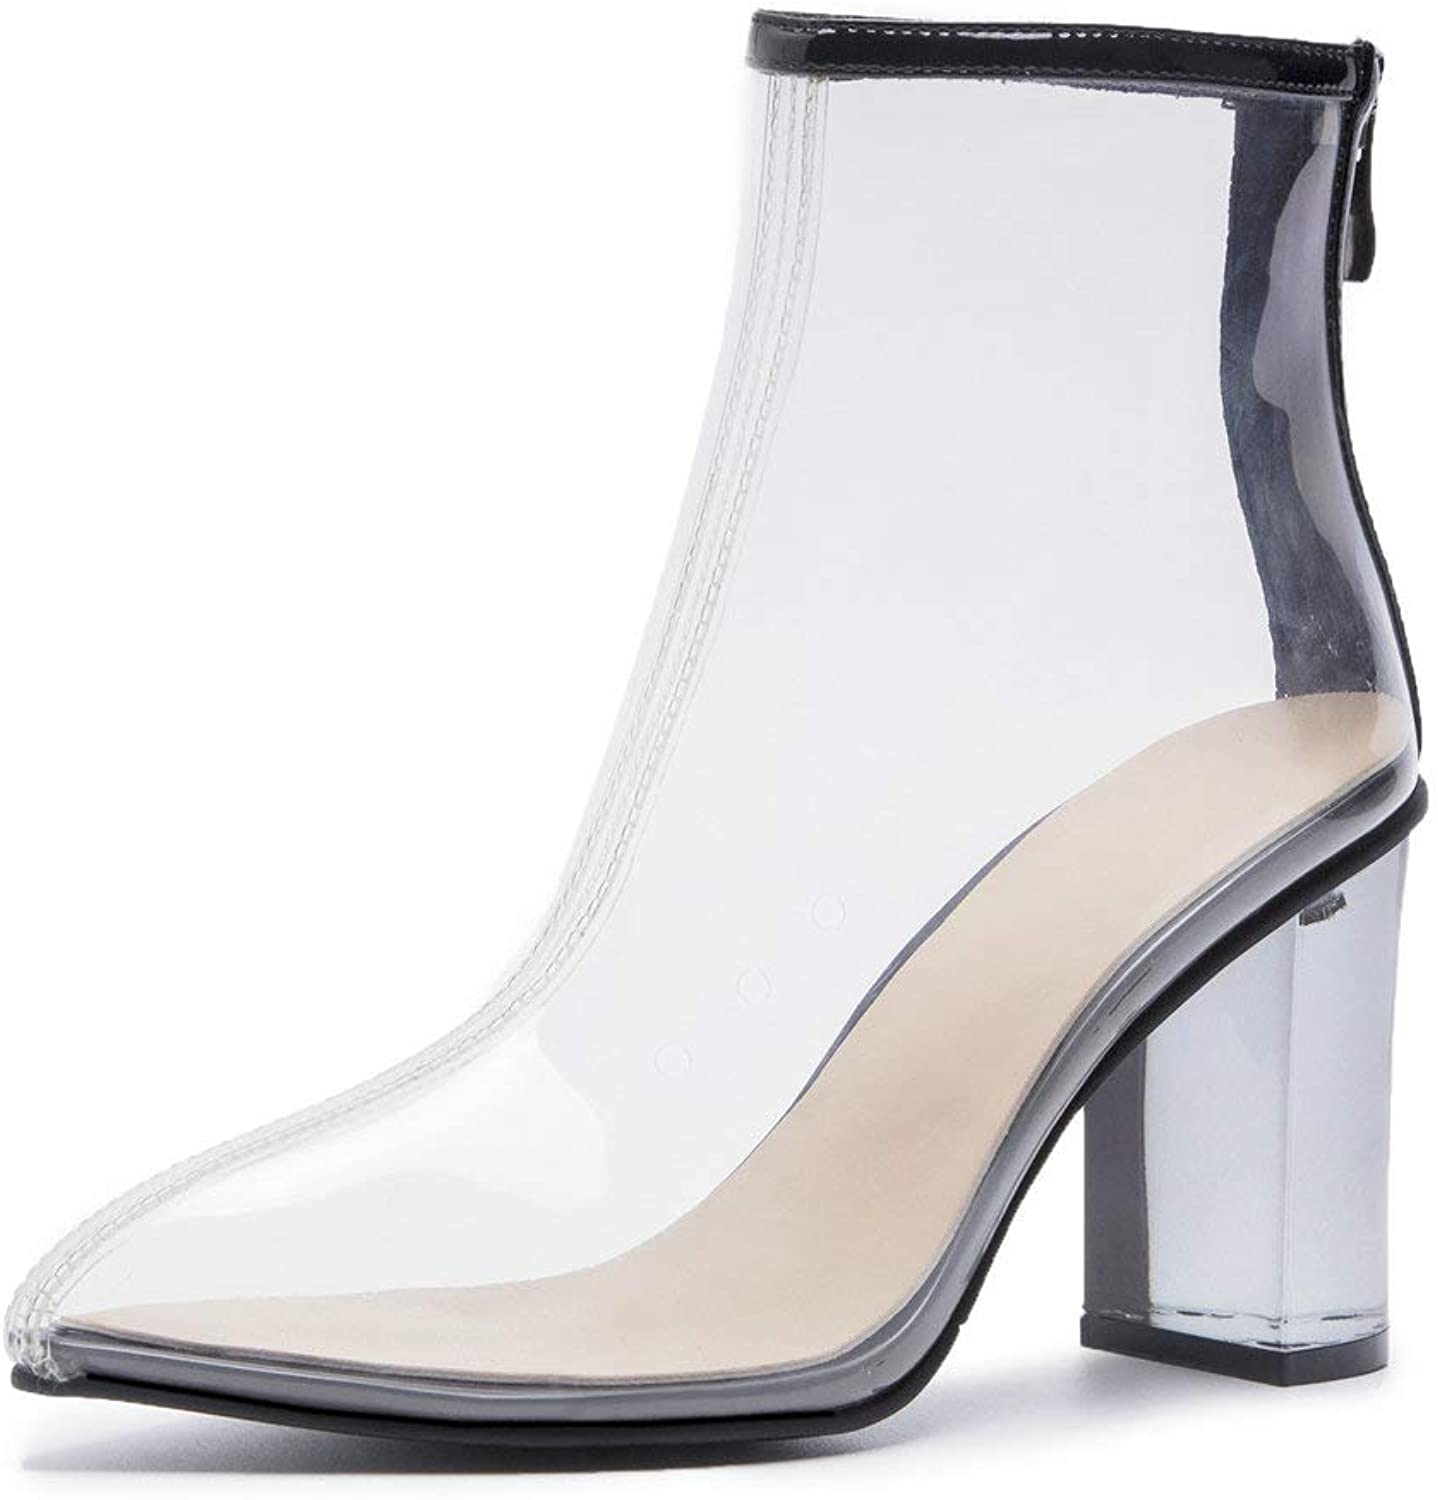 AnMengXinLing Ankle Boot Women Translucent Transparent Perspex Block High Heel Pointed Toe Back Zip Dress Boot Spring Pumps shoes 2019 Plus Size